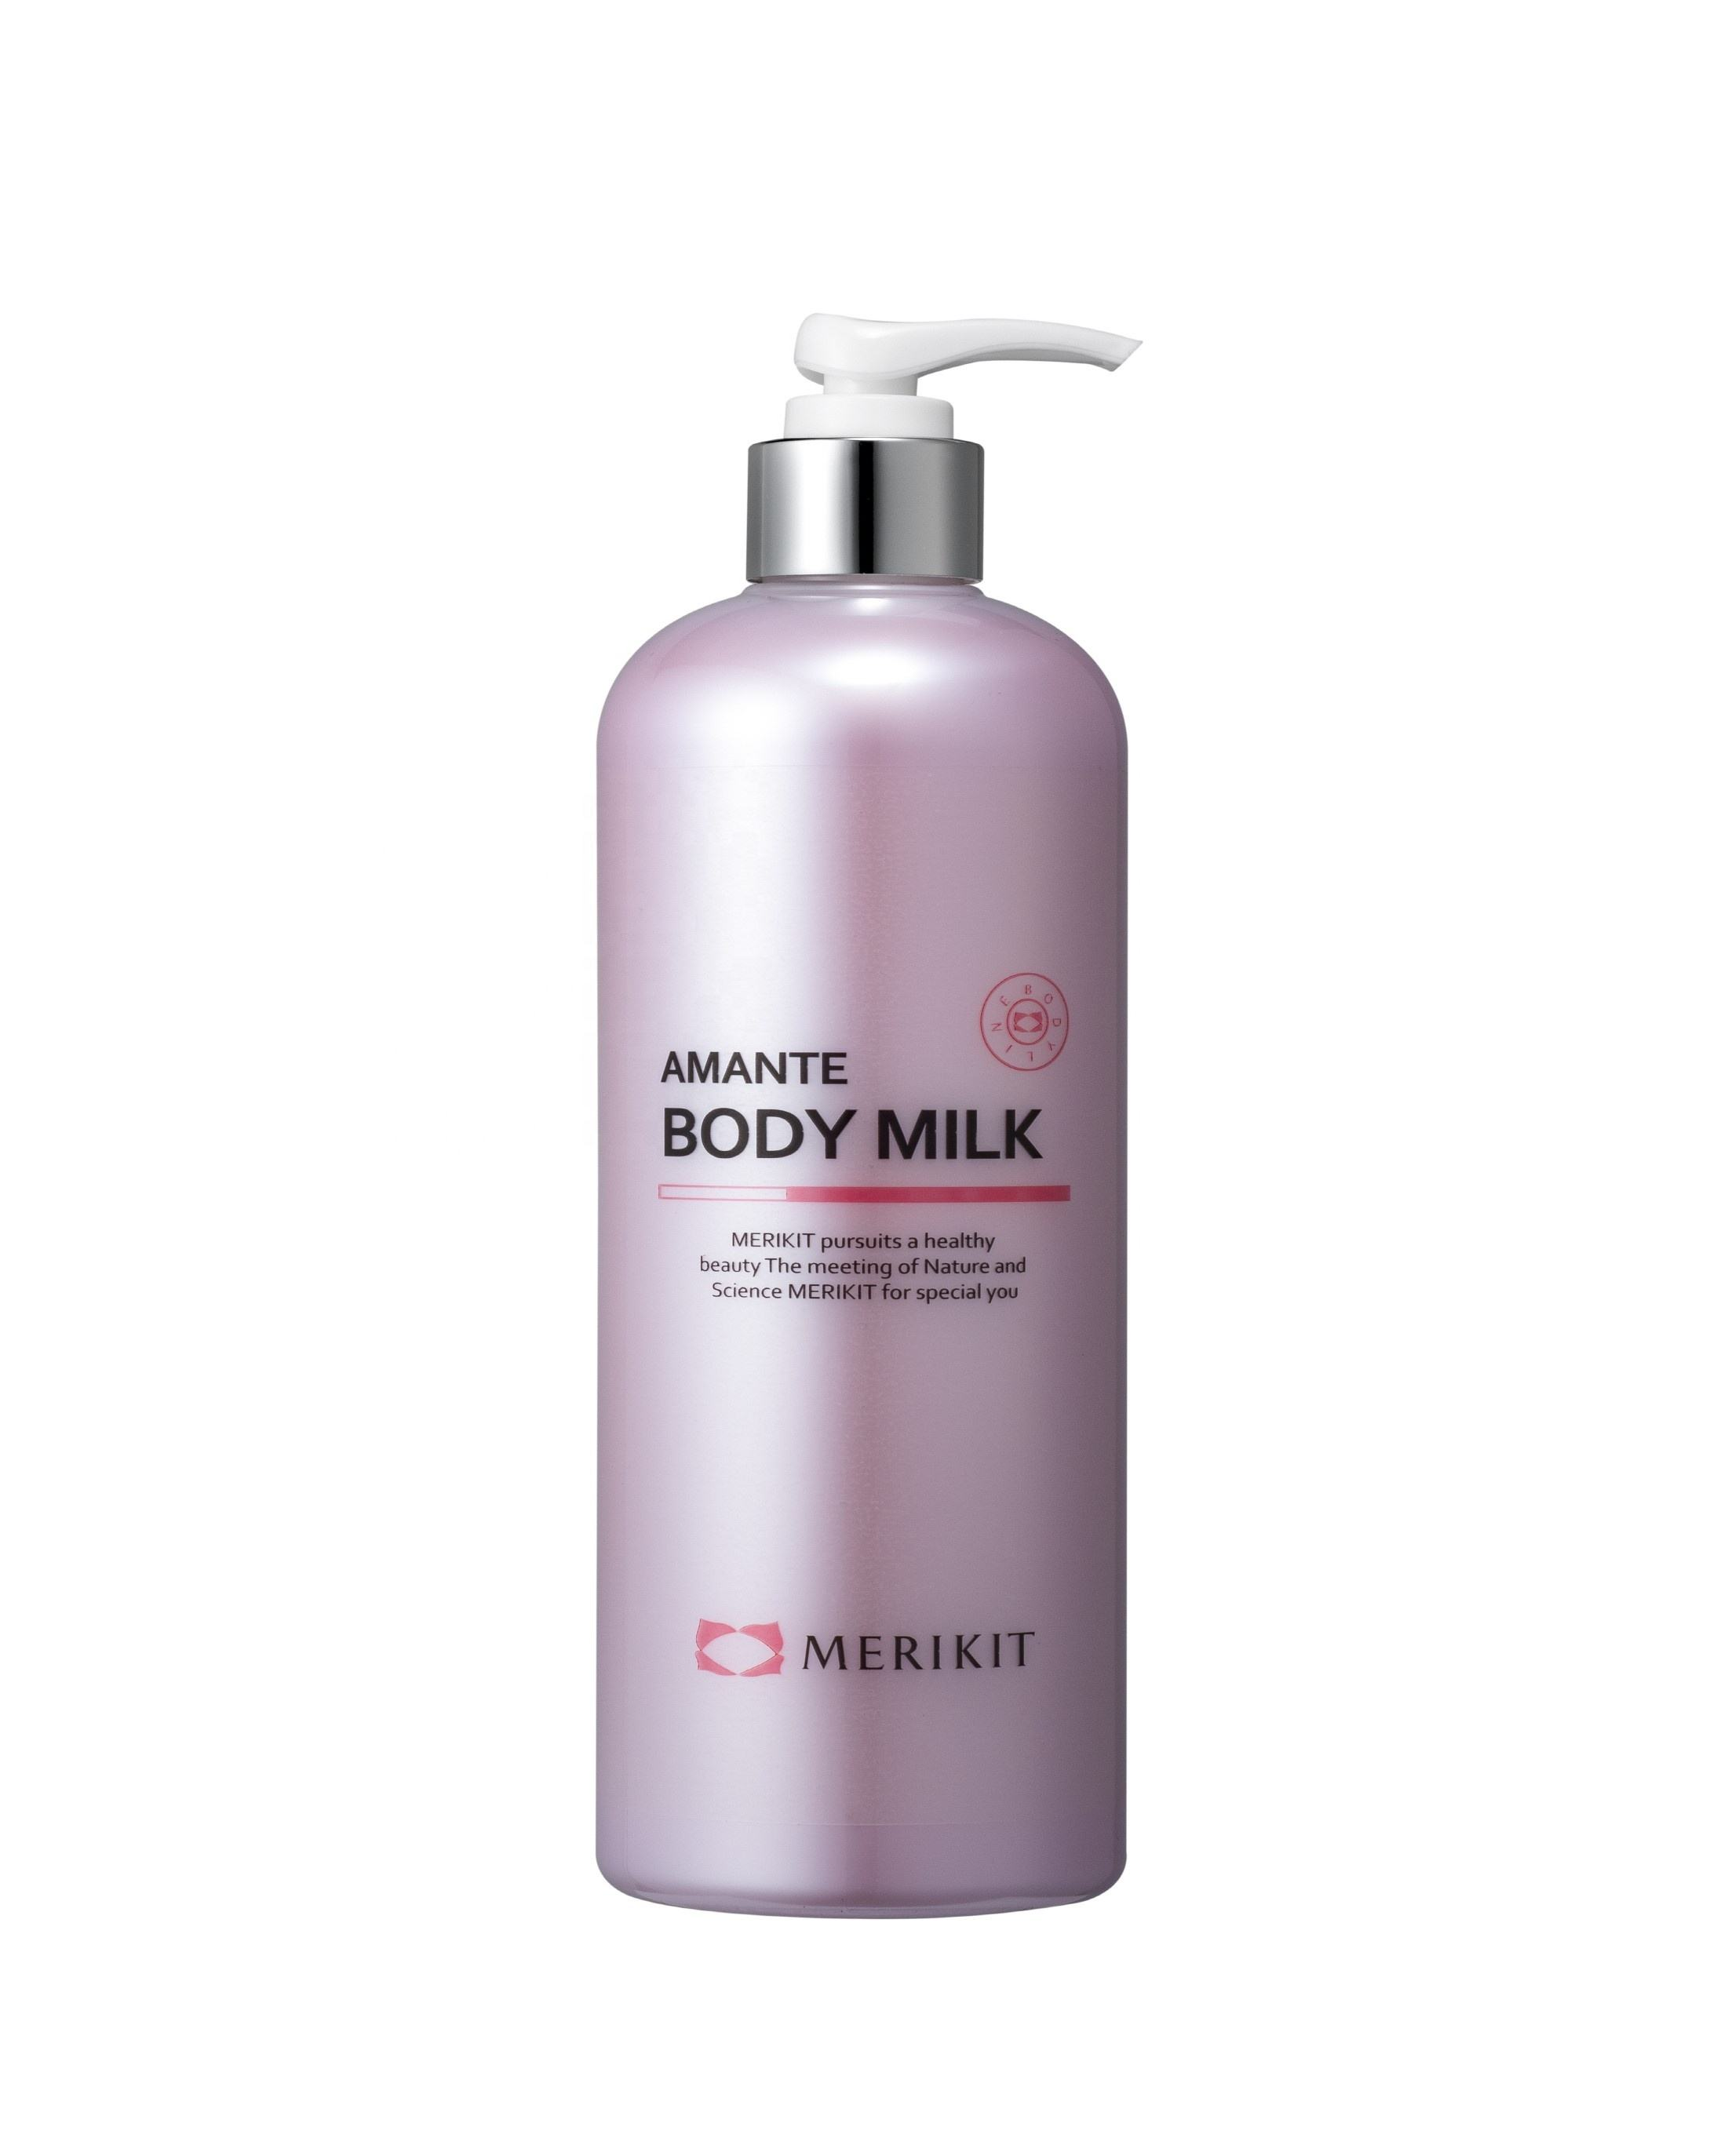 Body lotion, shea butter, moisturizing, Korean cosmetics